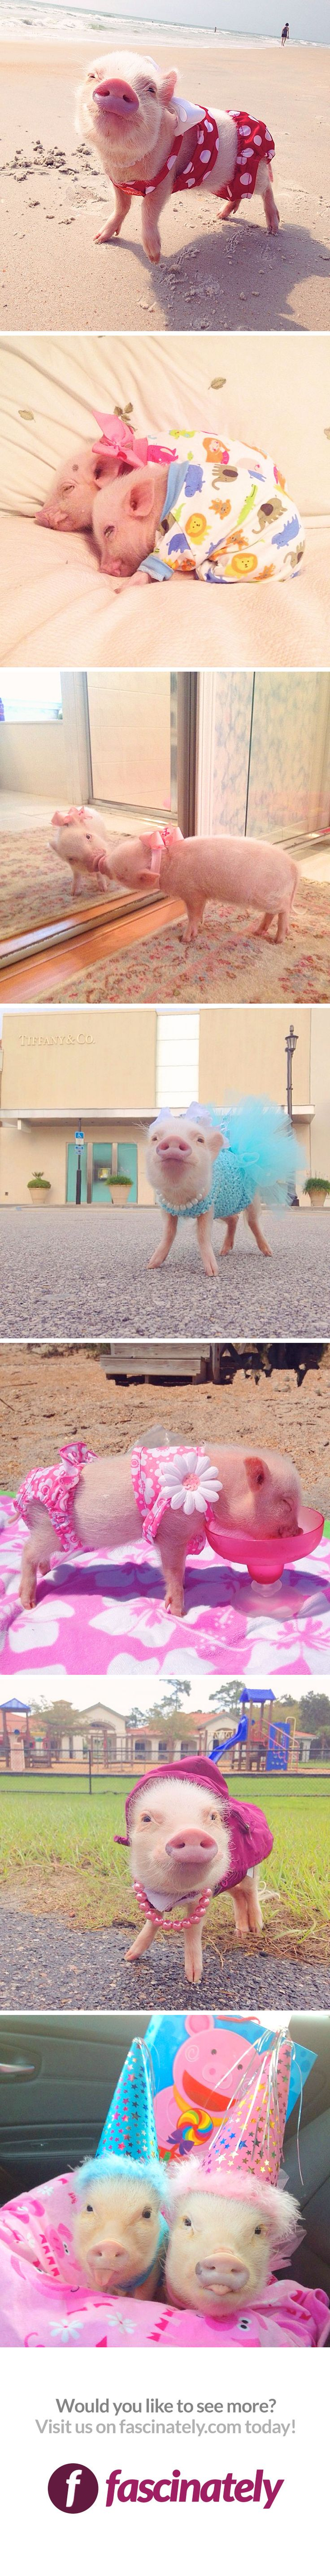 Meet the most adorable, popular pig on instagram! She's pretty stylish, too - she loves to lay out on the beach and pose in her cute clothes!